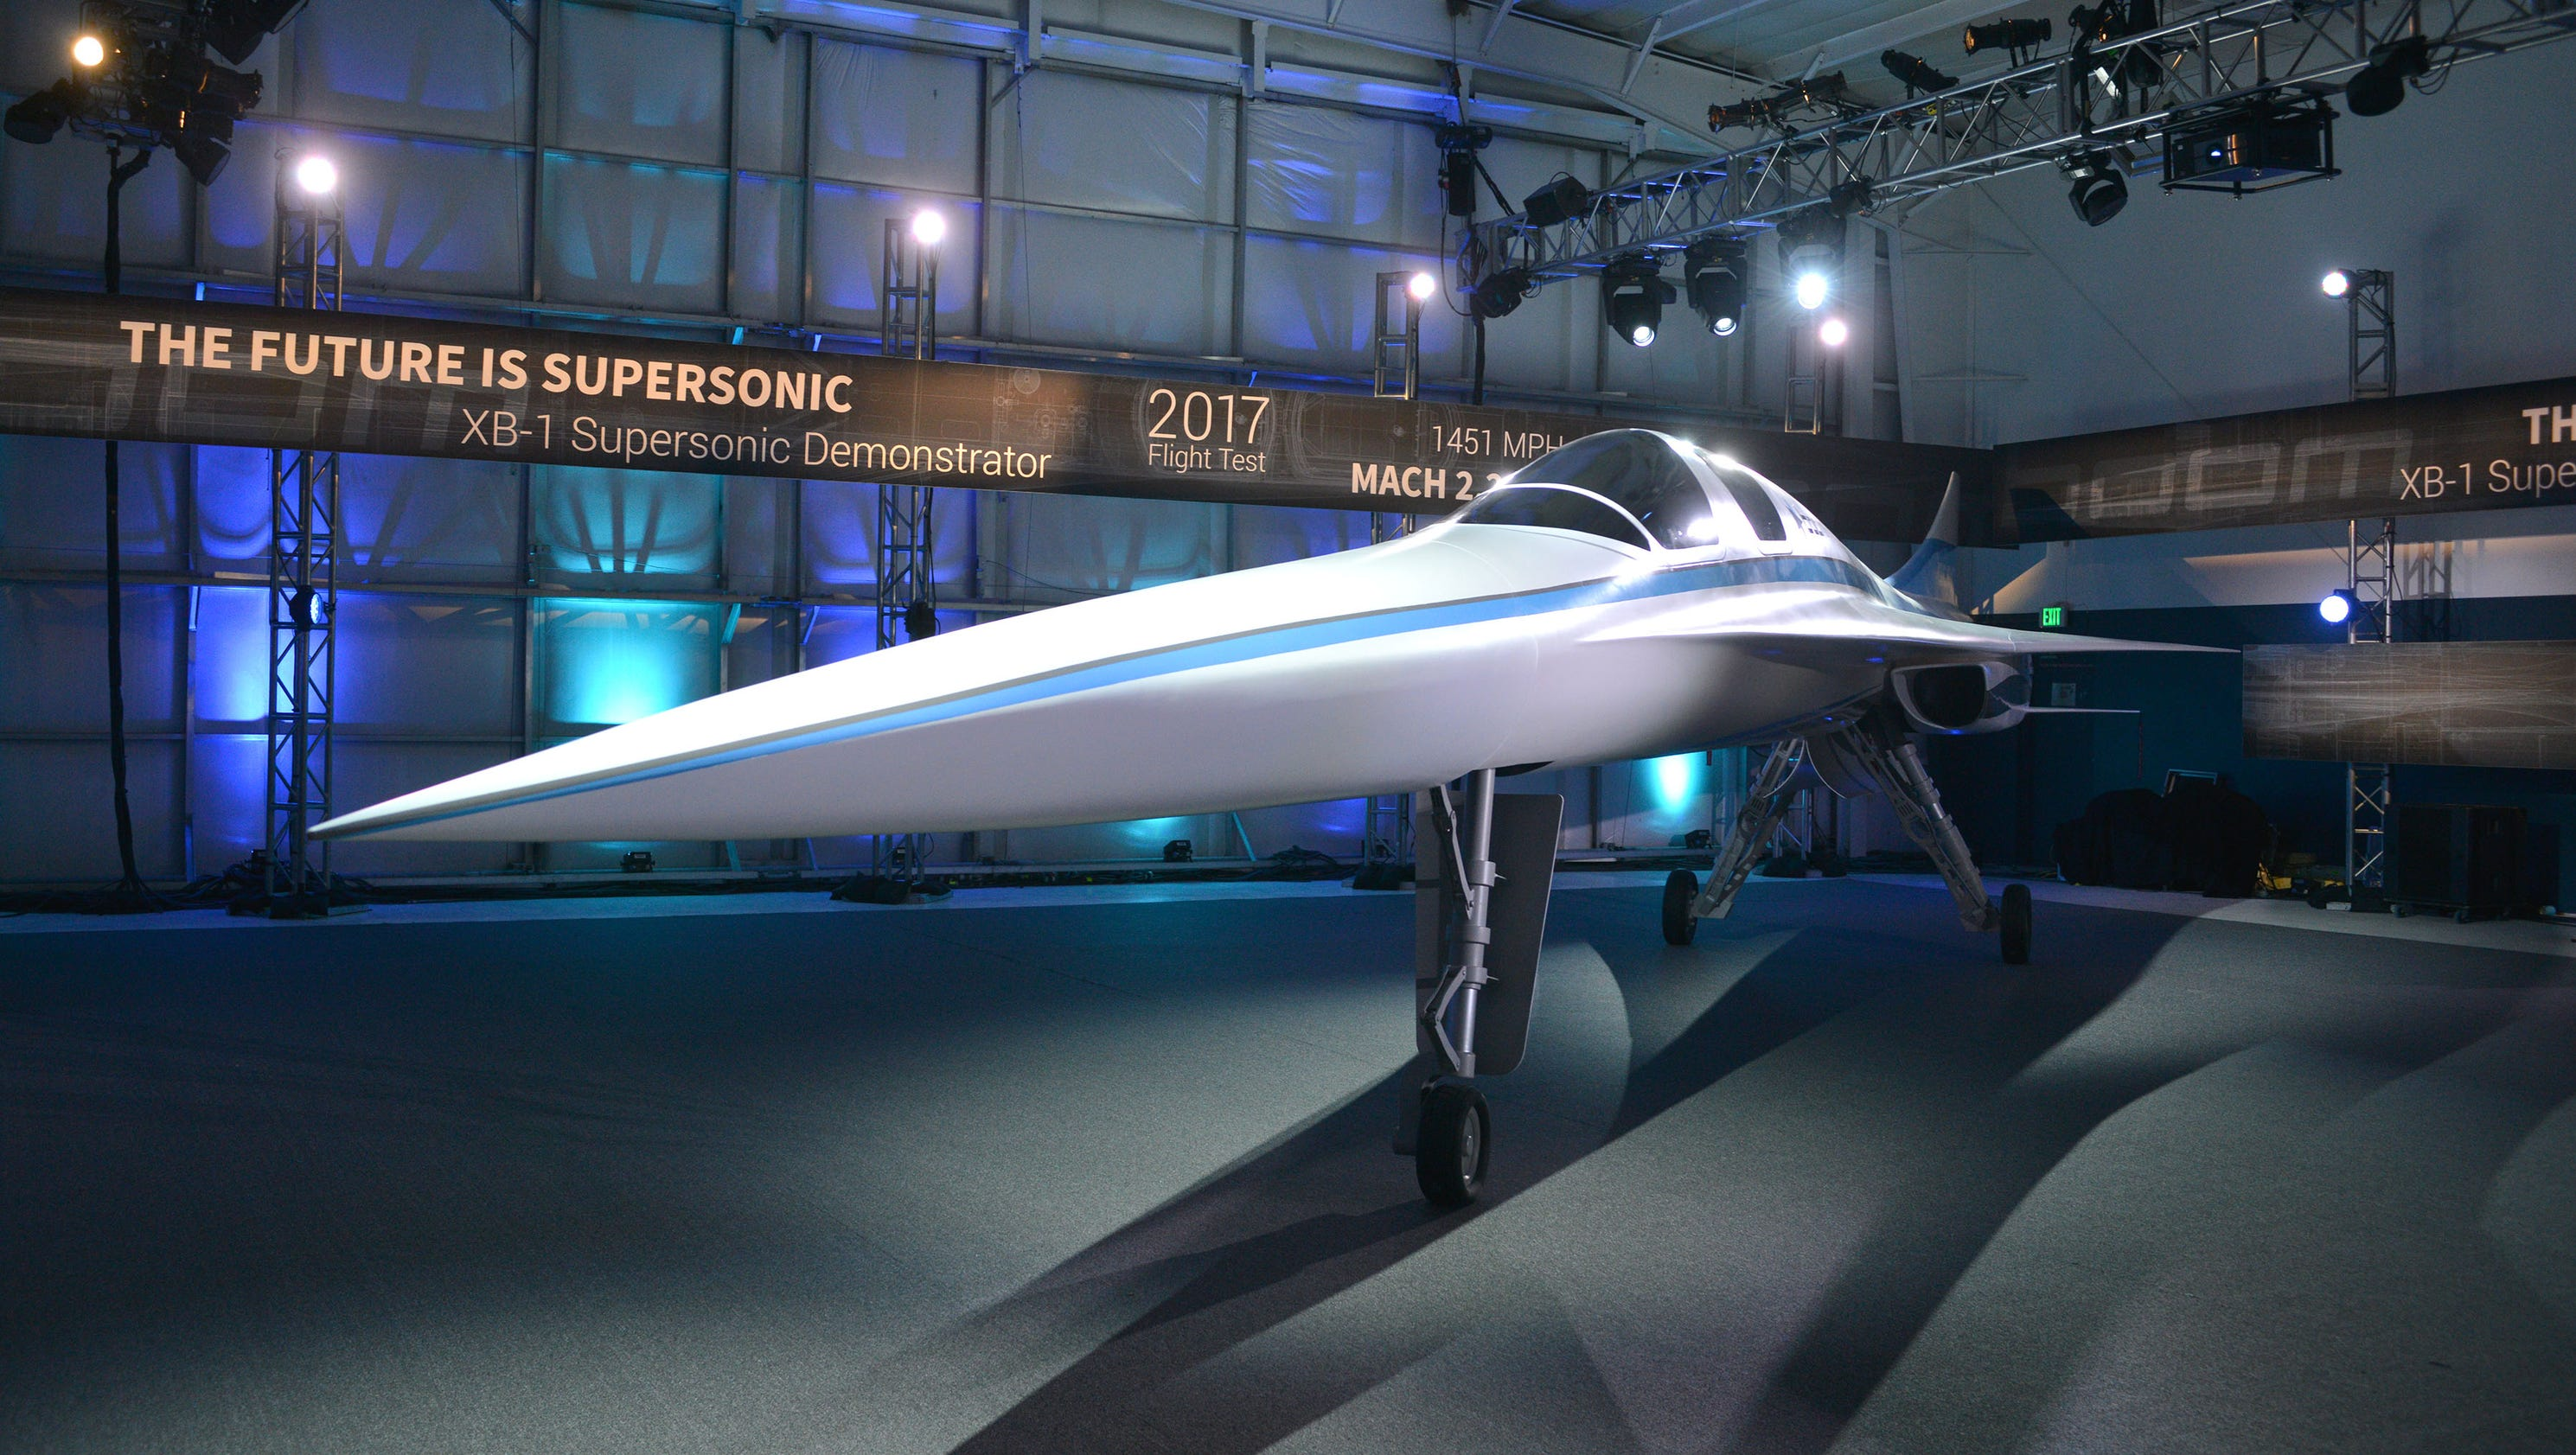 Boom! Project plans to bring back supersonic trans-Atlantic flights